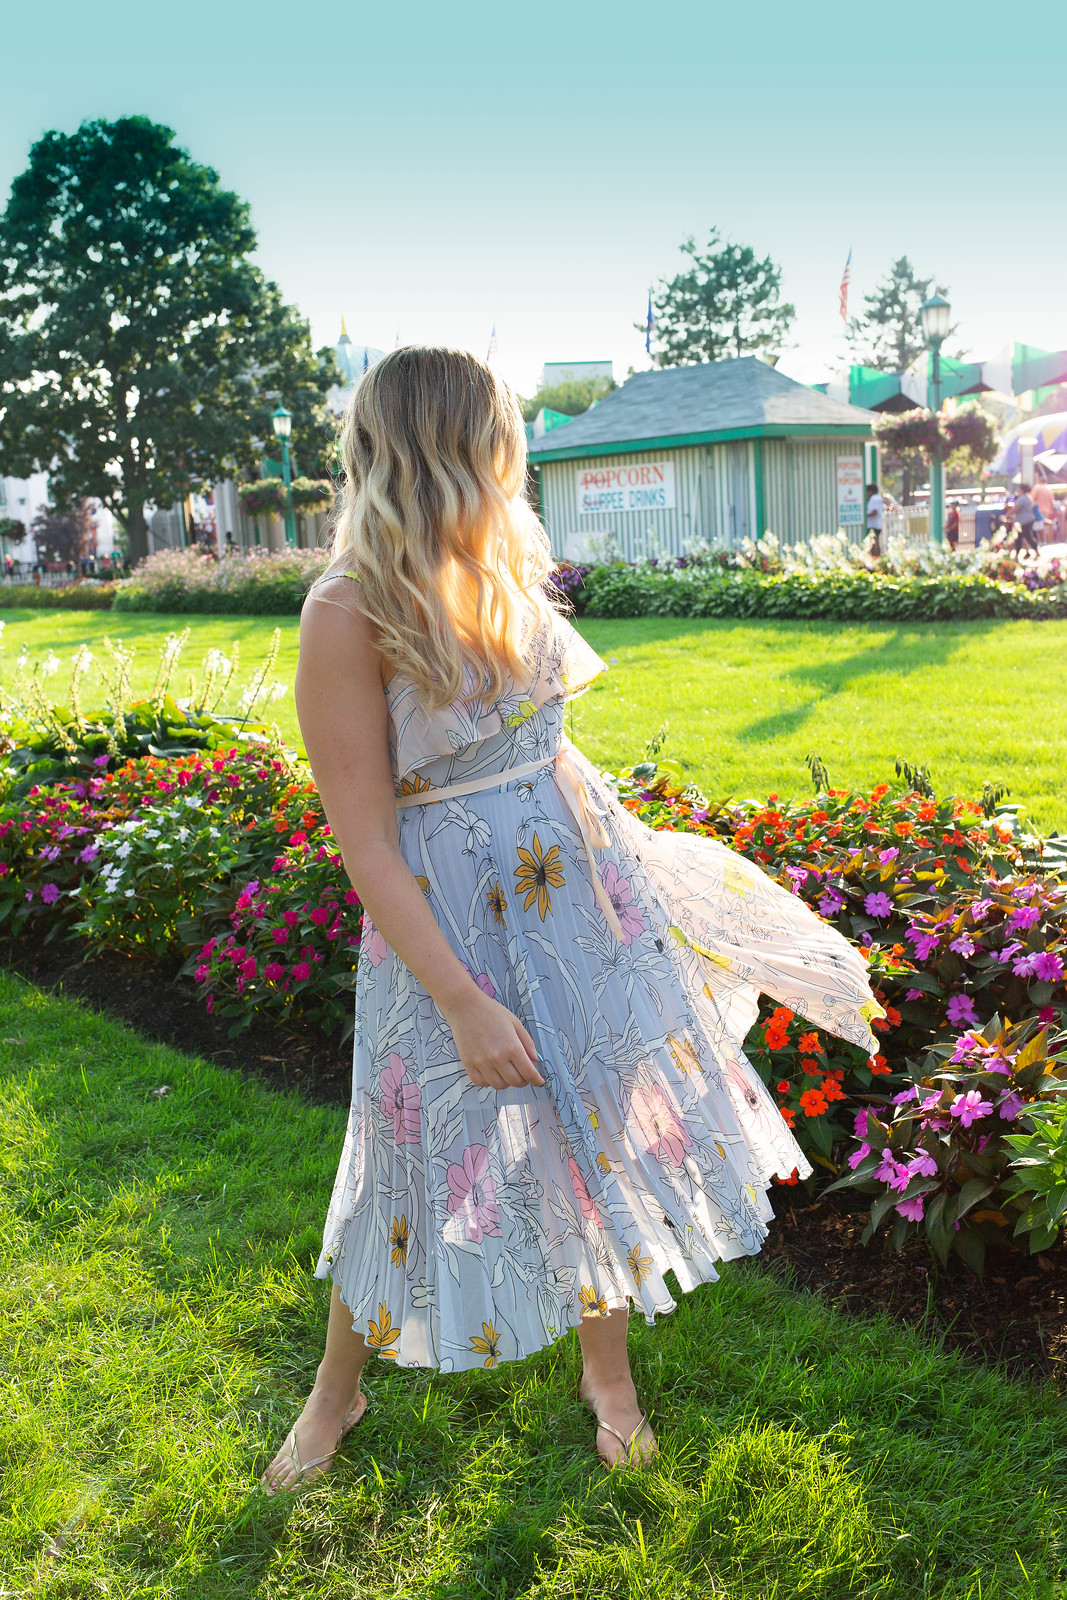 Topshop Pastel Pleated Midi Dress Nordstrom Westchester Playland Park Amusement Park Rye NY Currently Obsessed with Pleated Dresses